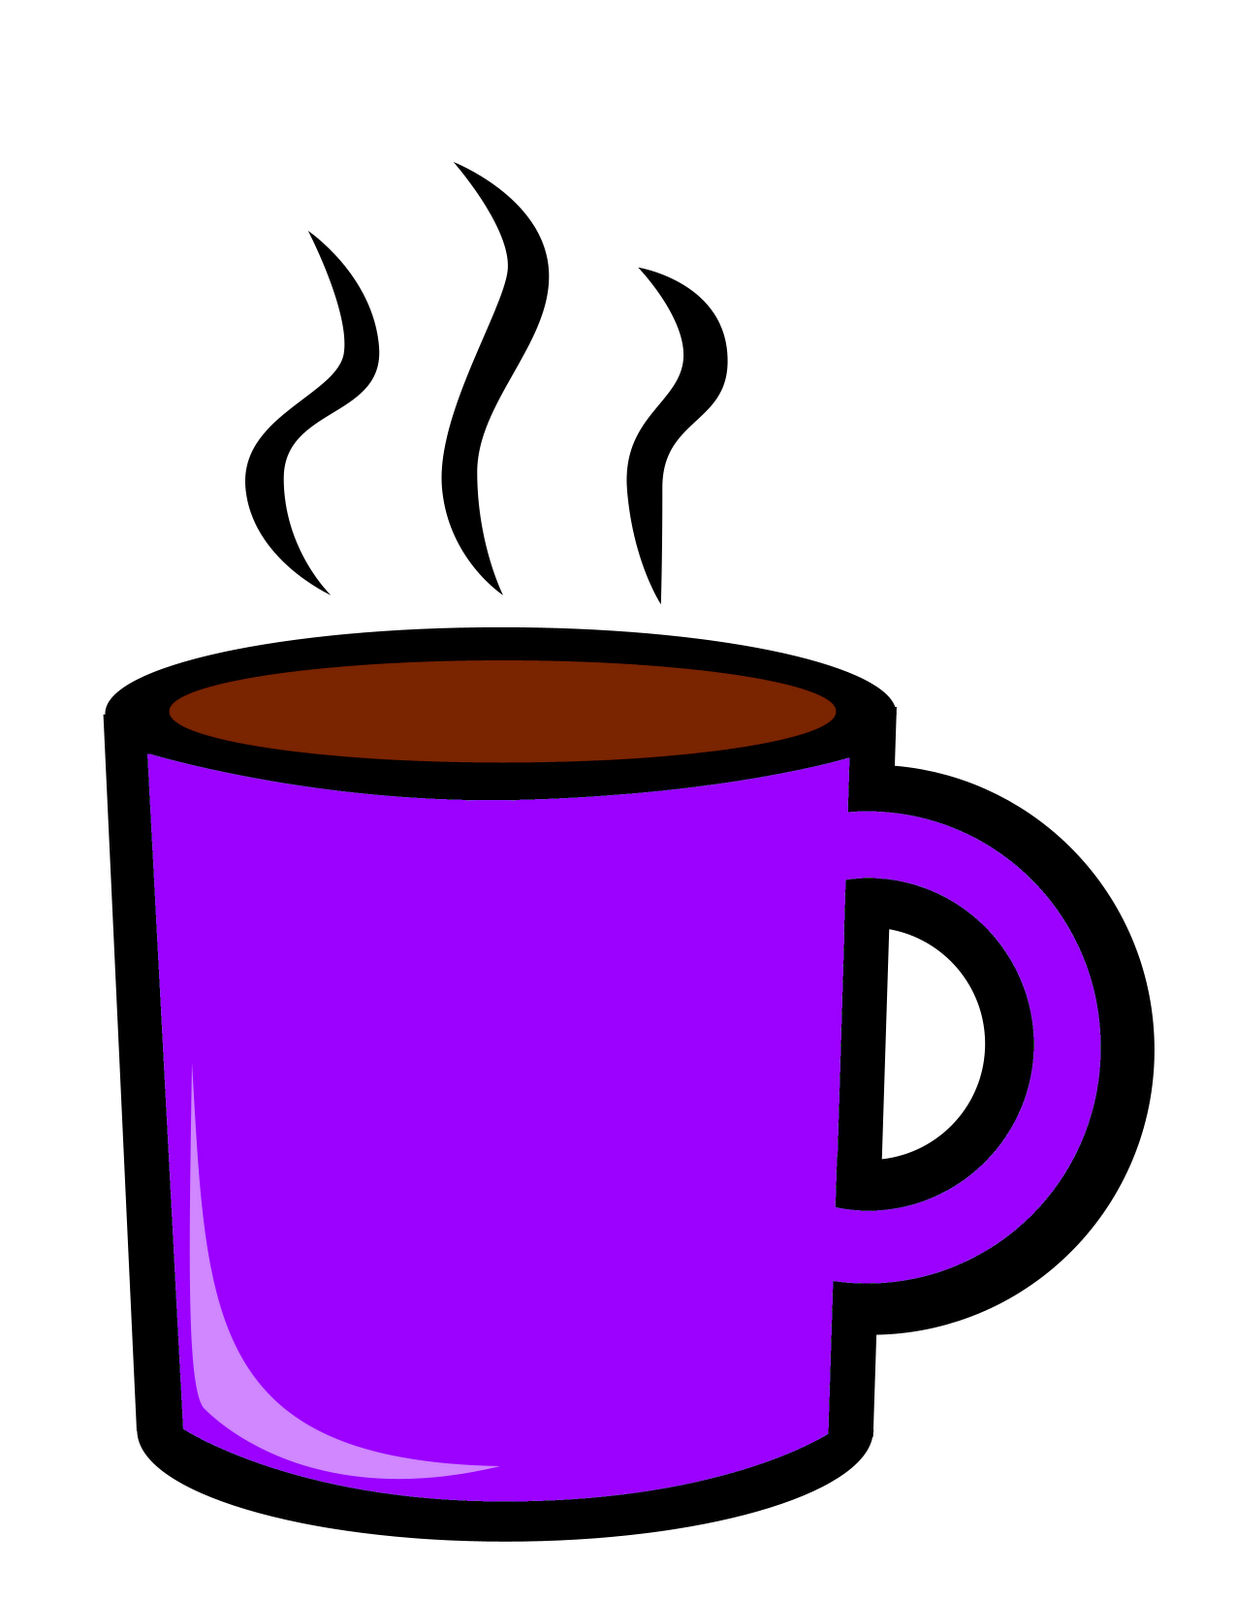 Hot vector cocoa. Chocolate clipart at getdrawings